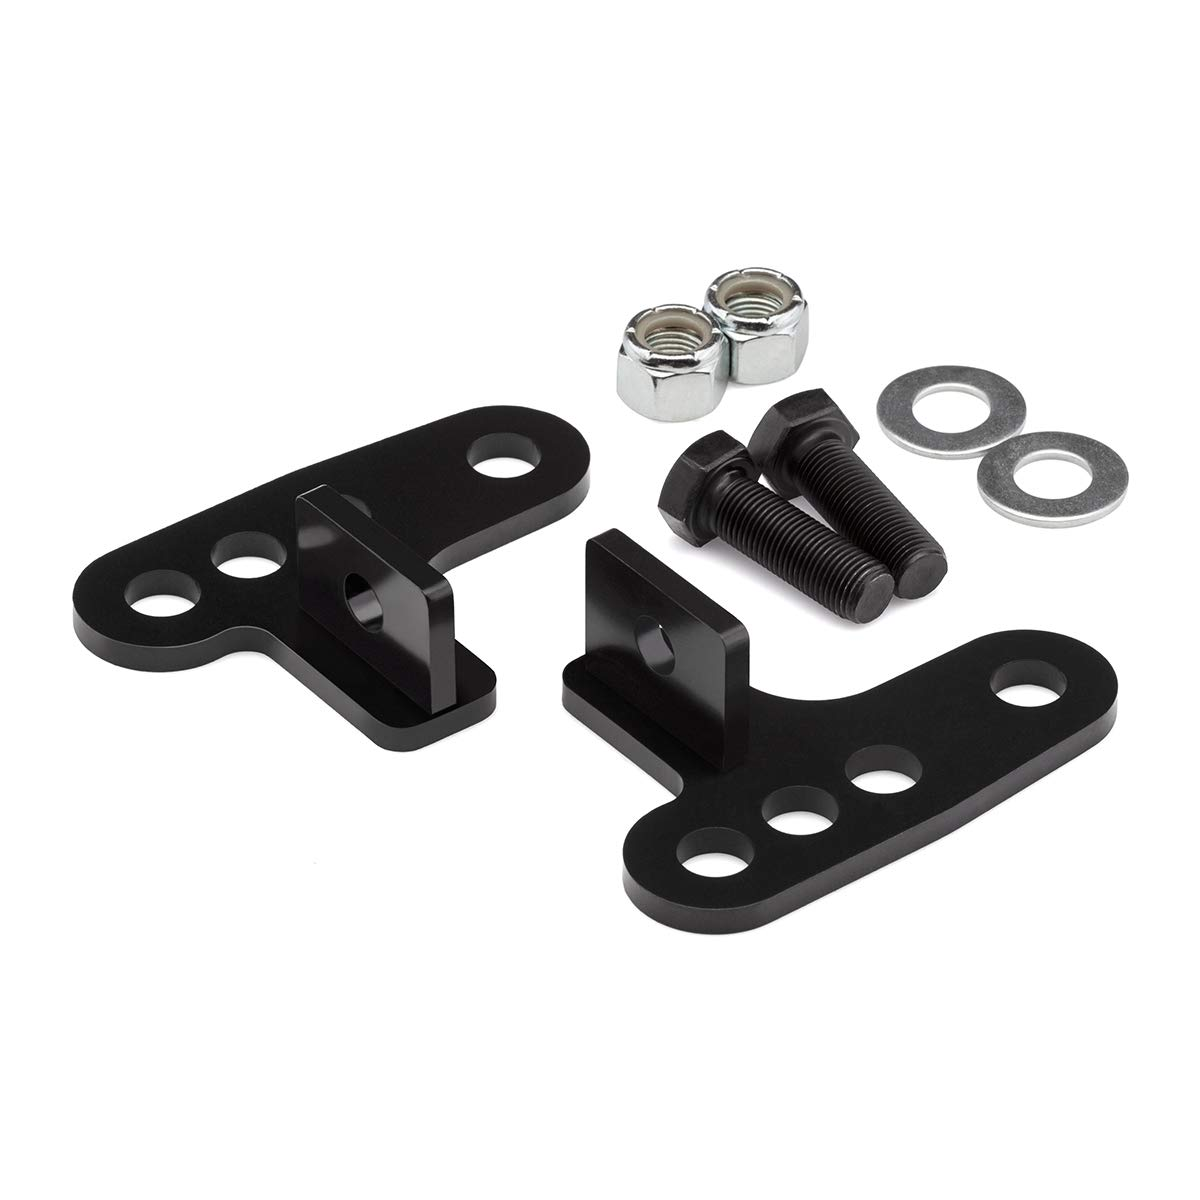 3 Rear Lowering Link Kit Sportster 883 BlackPath 2 Black Sportster 1200 Motorcycle Drop Links High Carbon Steel Harley-Davidson Adjustable 1